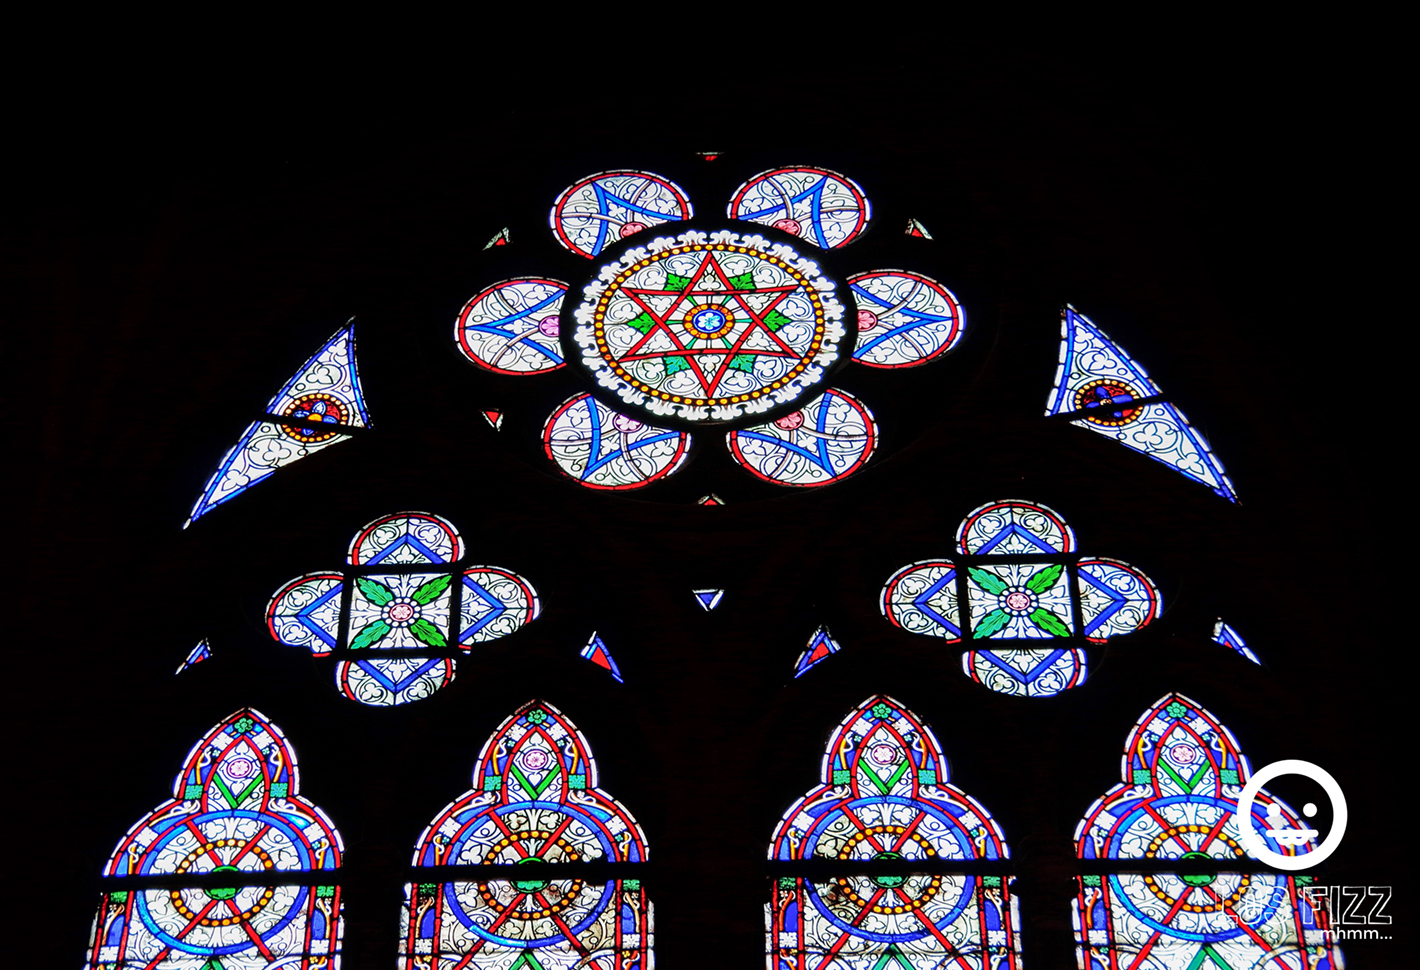 Stained glass from Notre Dame Cathedral in Paris. Photo By LosFizz.